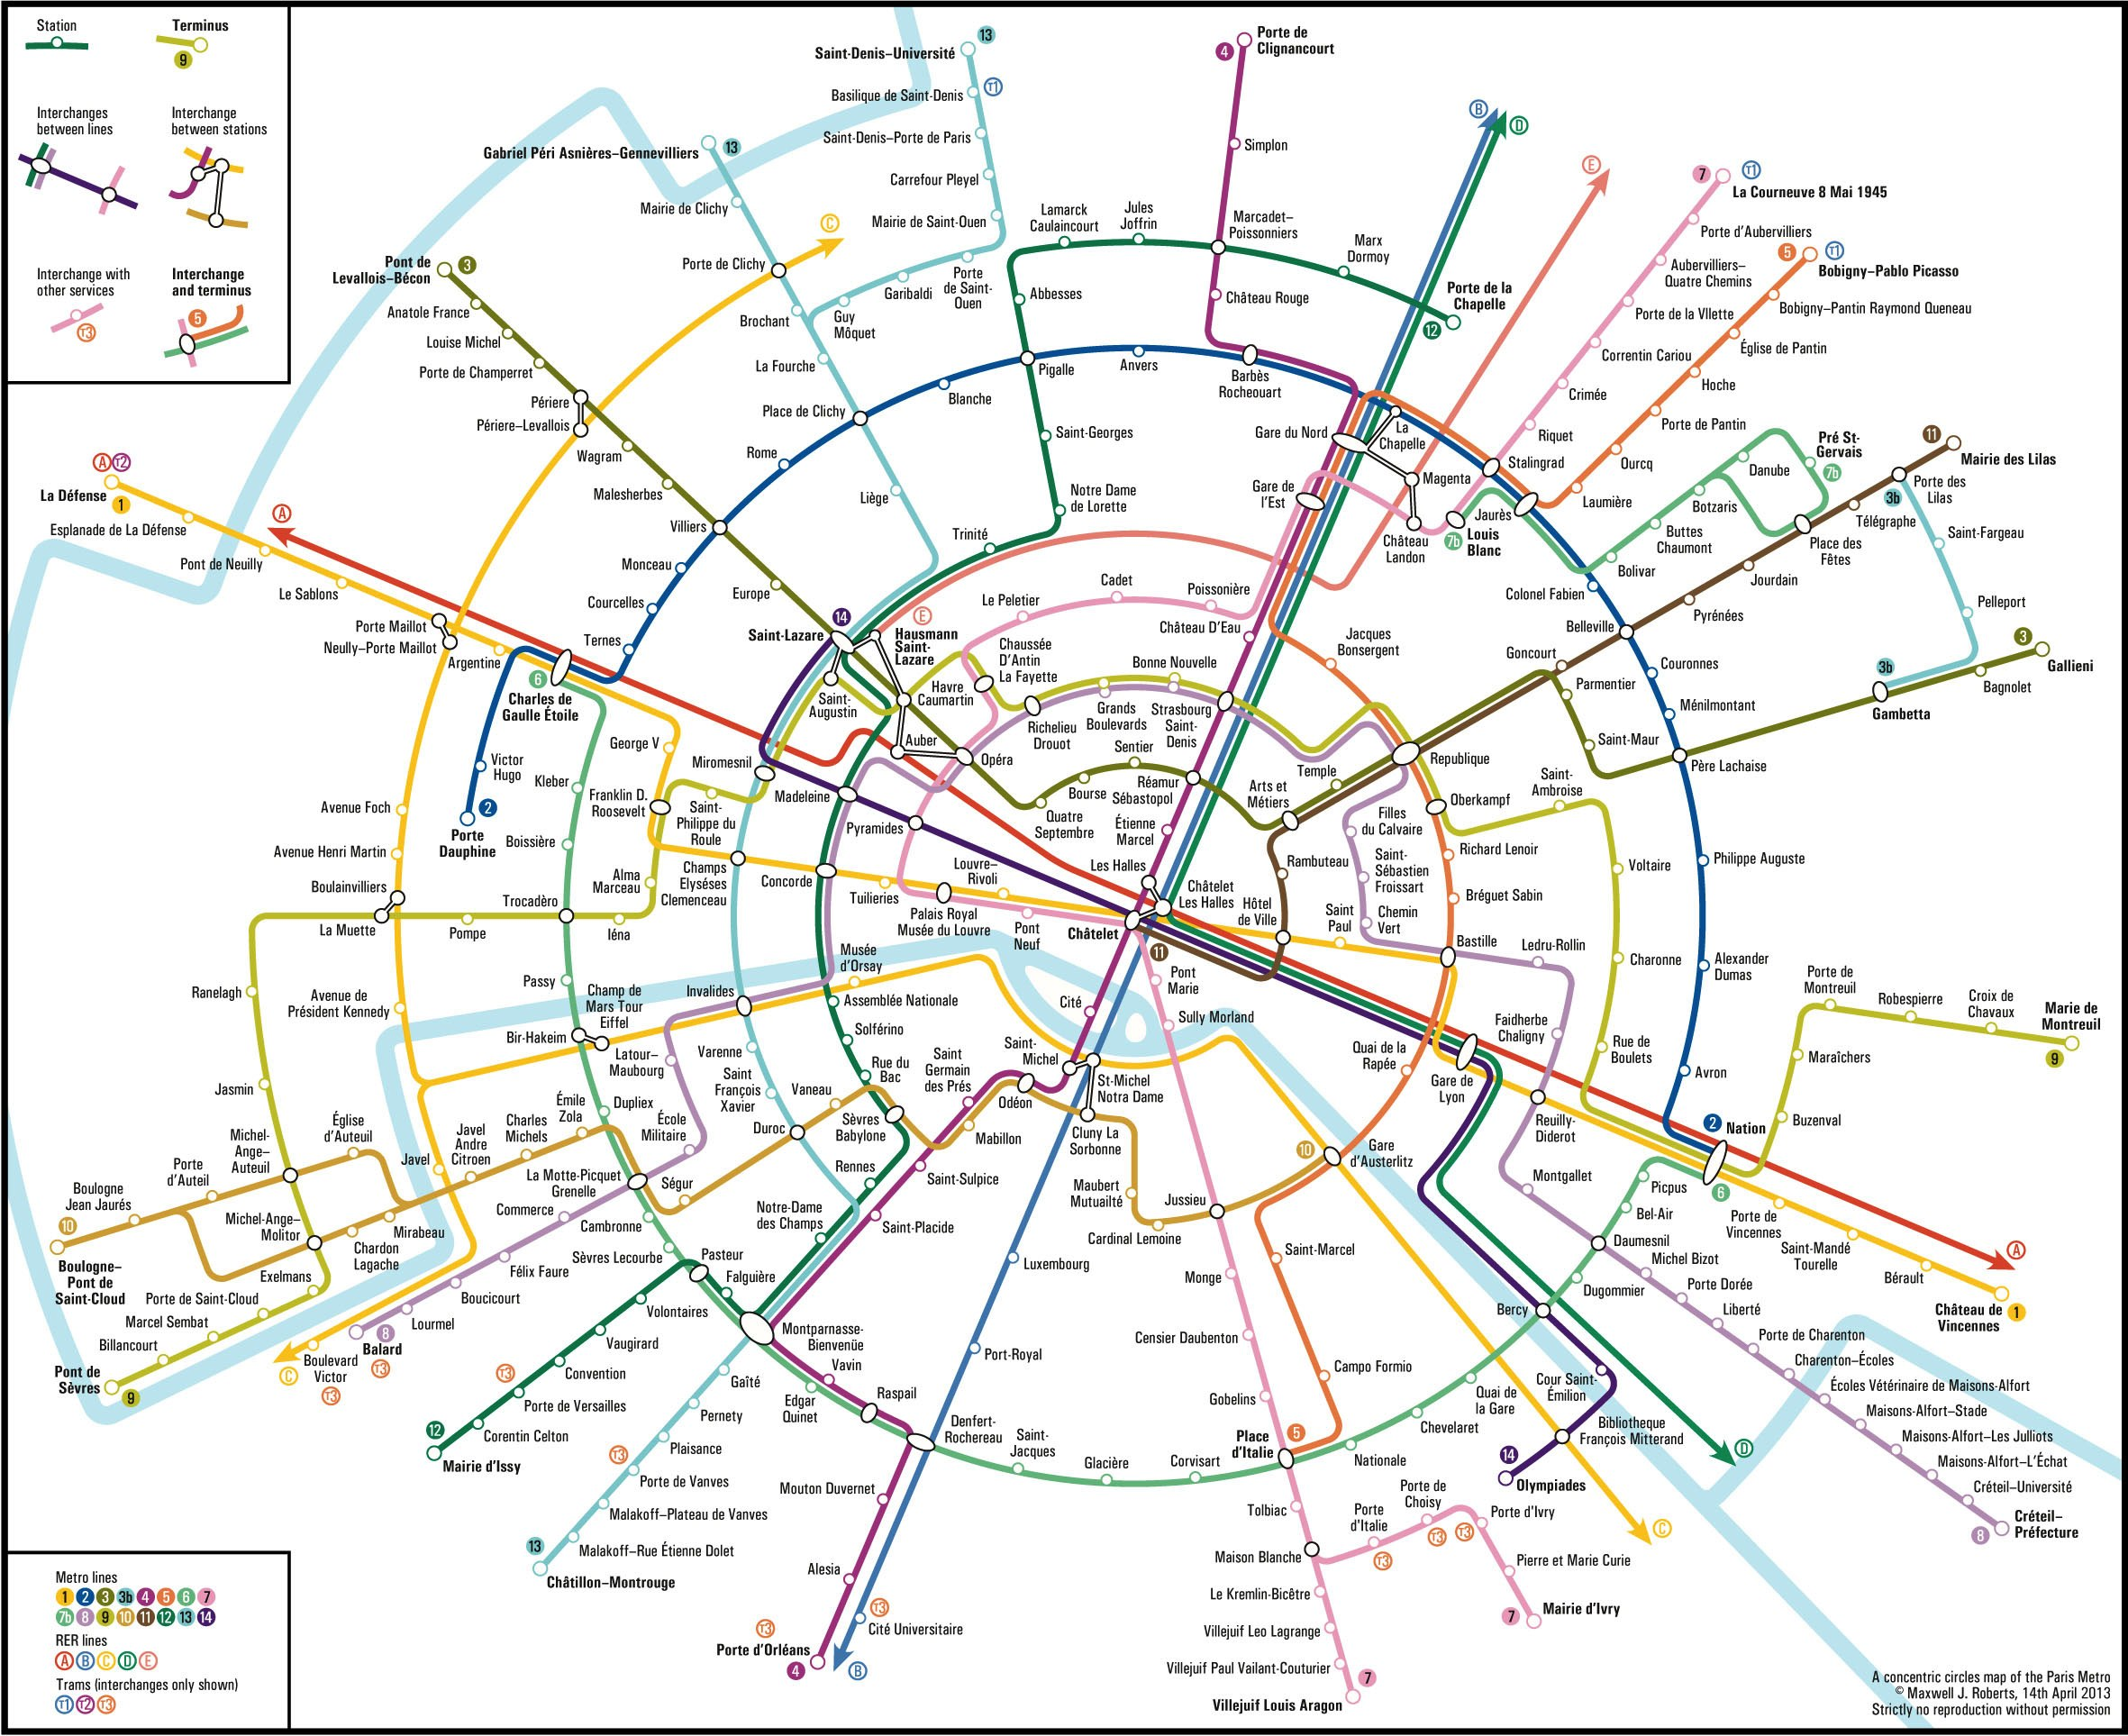 paris bus map printable with Subway Maps Of Cities Around The World Redesigned In A Circular Format on Toulon F Az Tou likewise Subway Maps Of Cities Around The World Redesigned In A Circular Format as well Barcelona Bus Map also Heidelberg Tram Bus And Rail Map besides Prague Bus Metro.